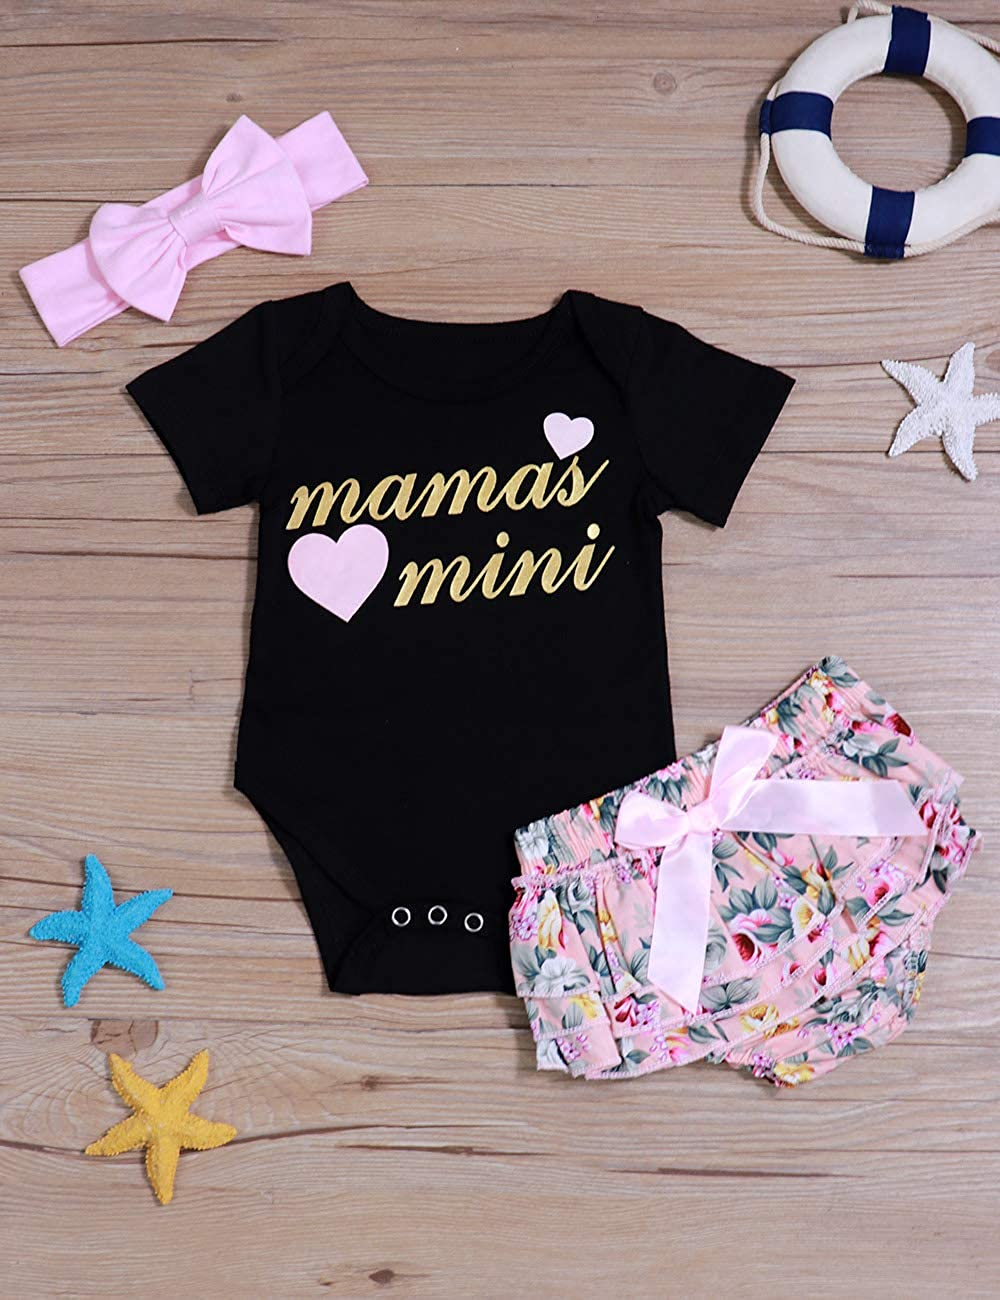 Infant Baby Boys Girls Clothes 3PCS Outfits Romper Shorts Headband for Daddy and Mommy